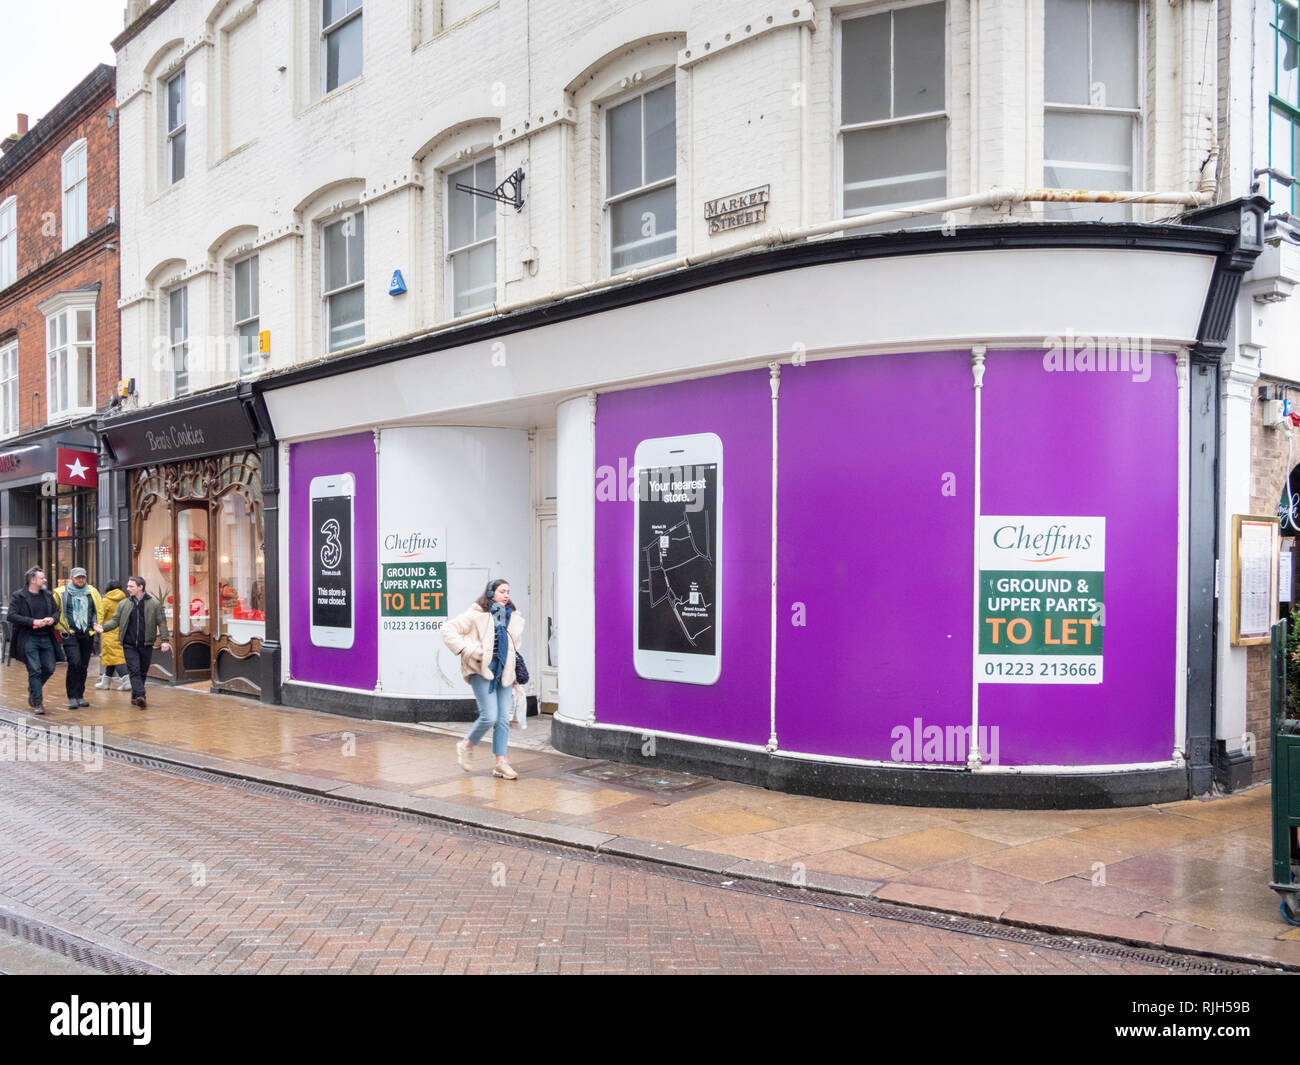 Empty shops and retail units in Cambridge city centre showing the struggling high street retail  economy in the UK - Stock Image